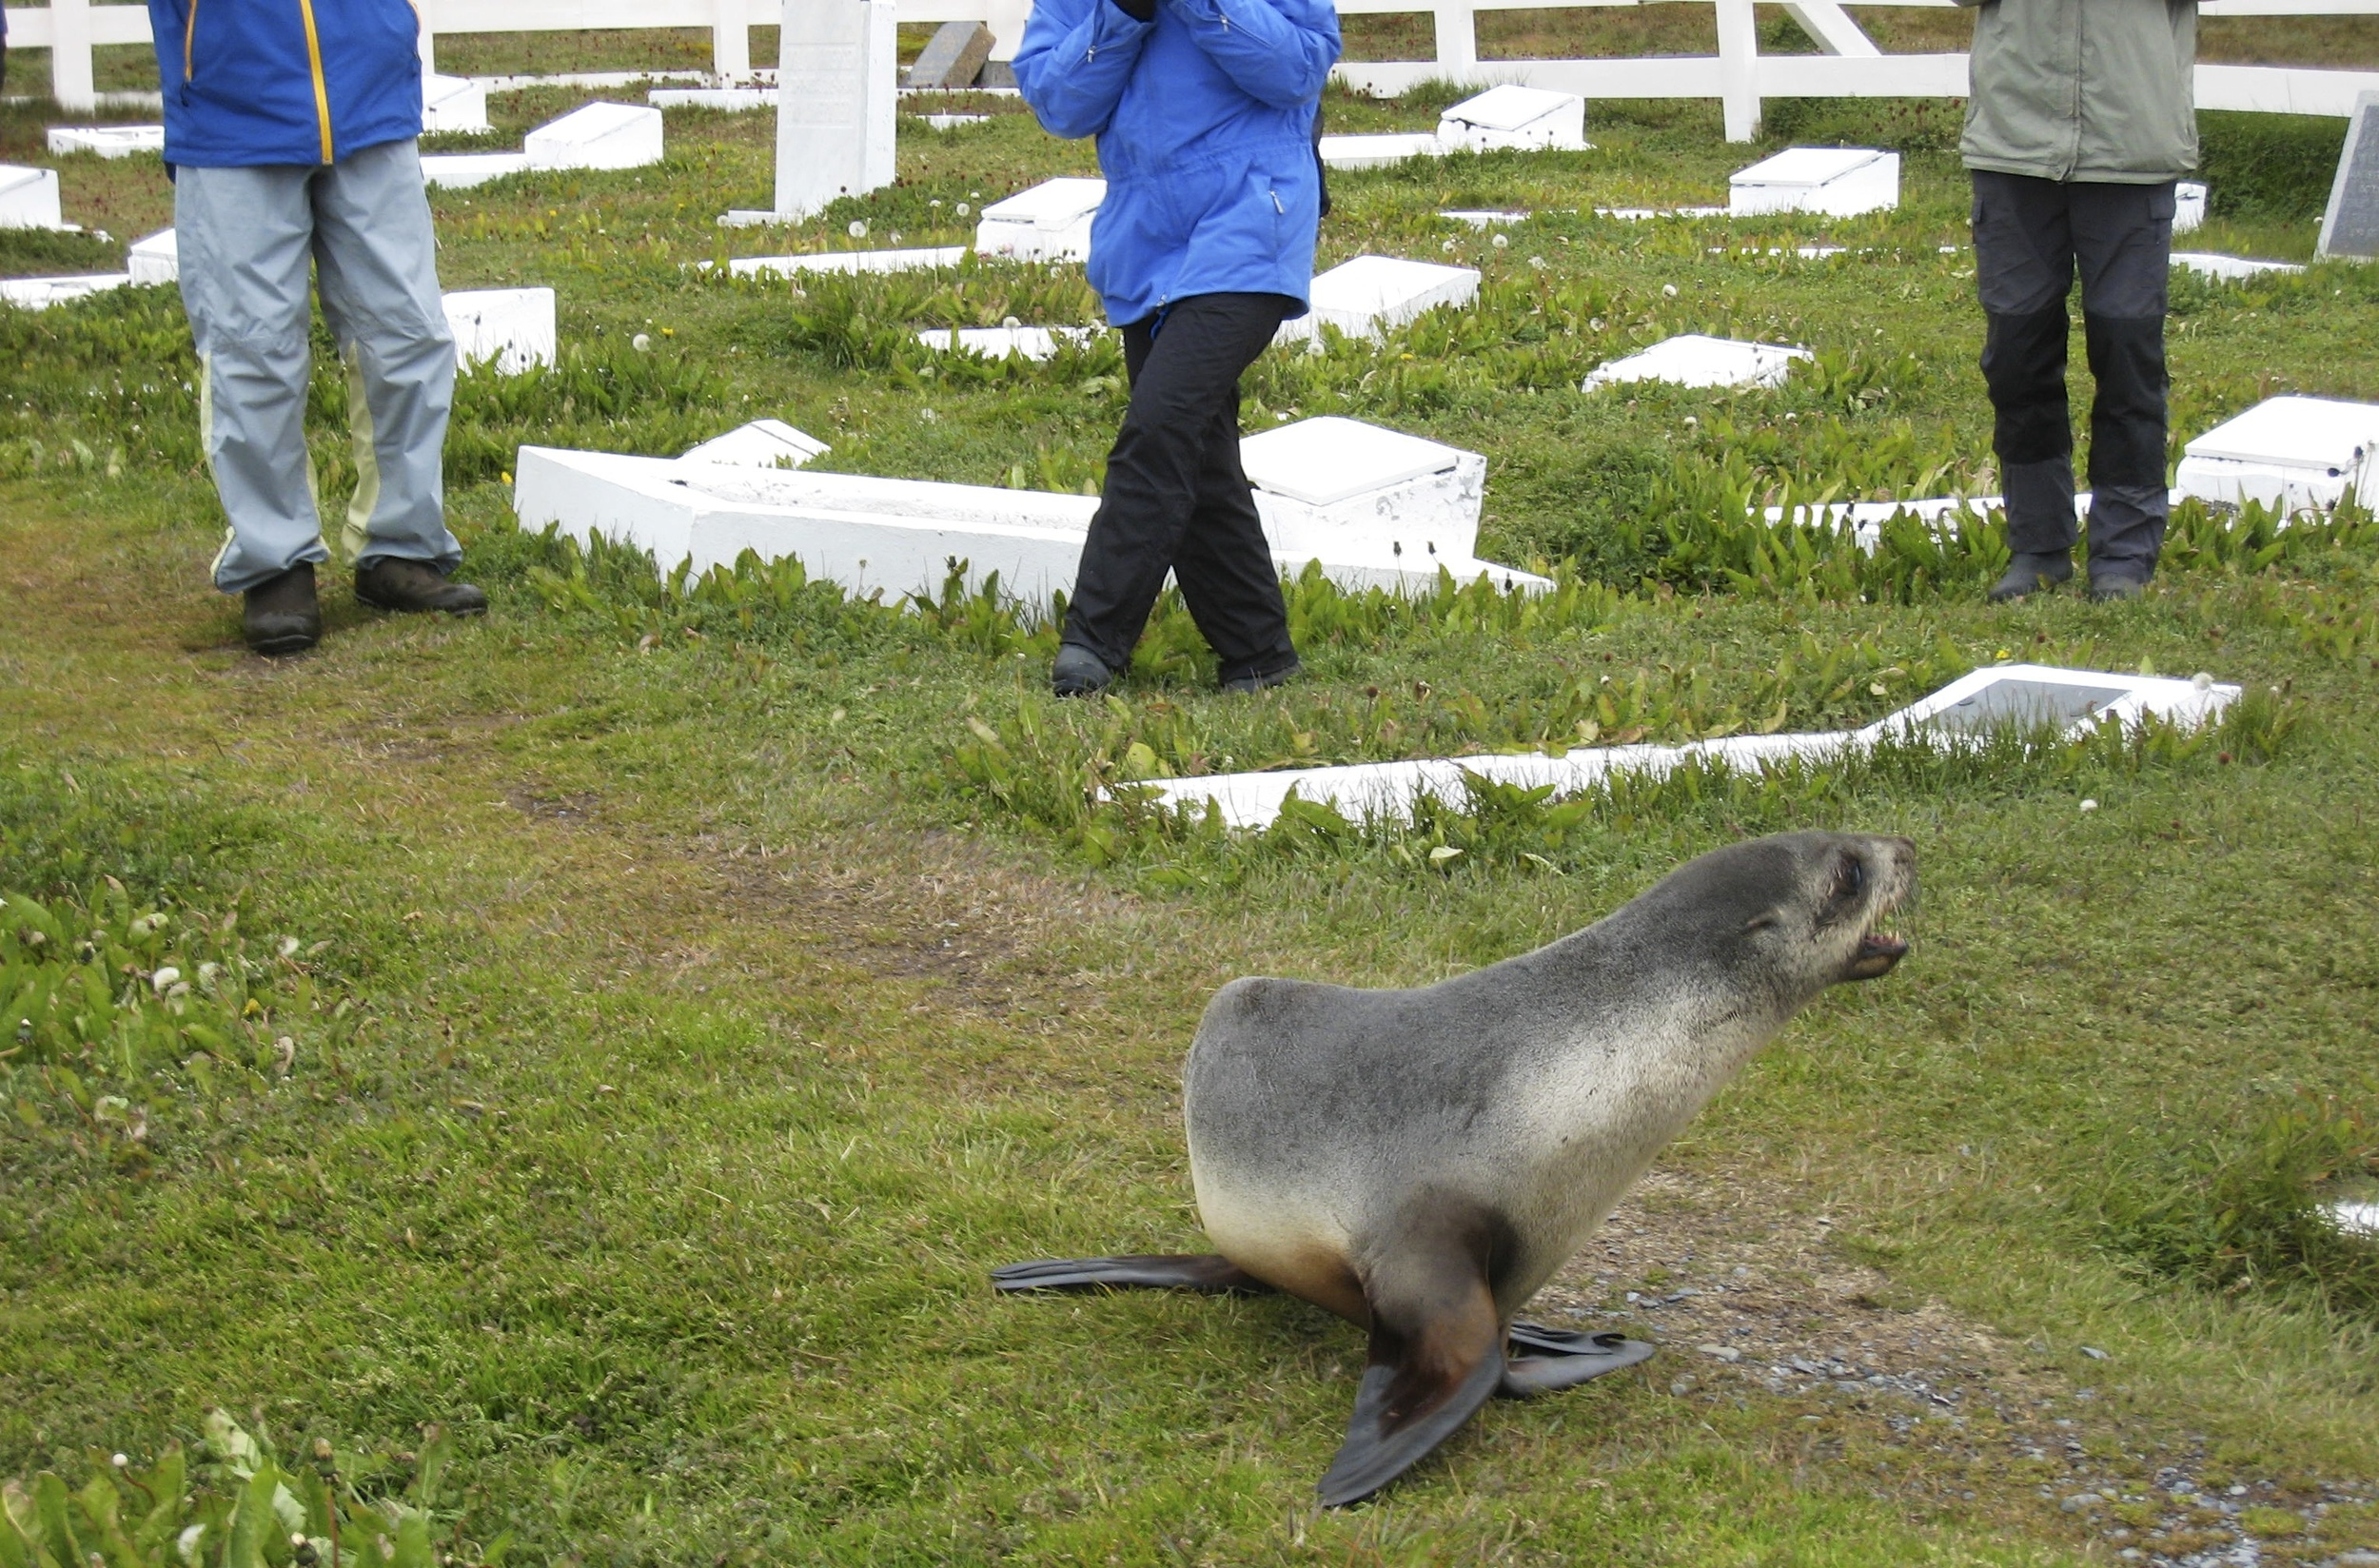 Chasing a Fur seal away before our memorial service around Shakleton's grave.